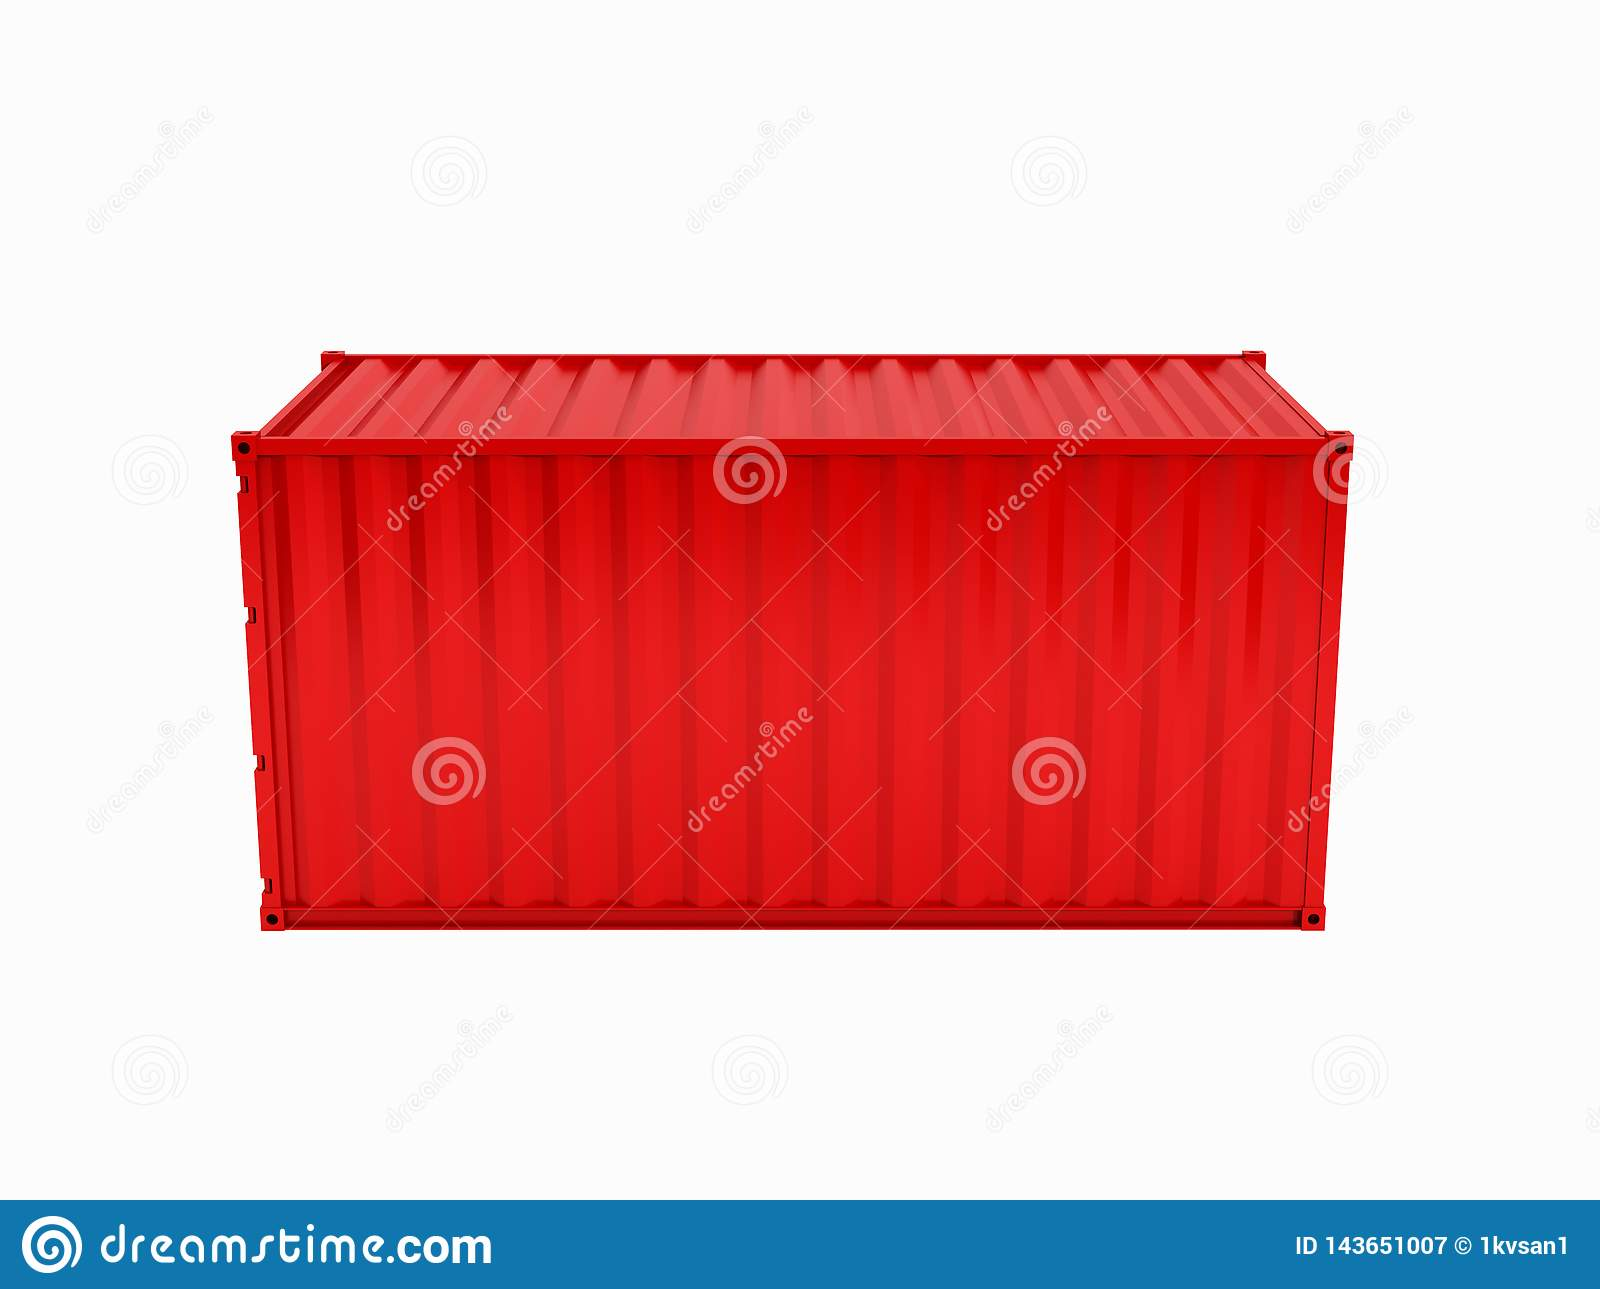 Cargo shipping container without inscription on white background 3d without shadow